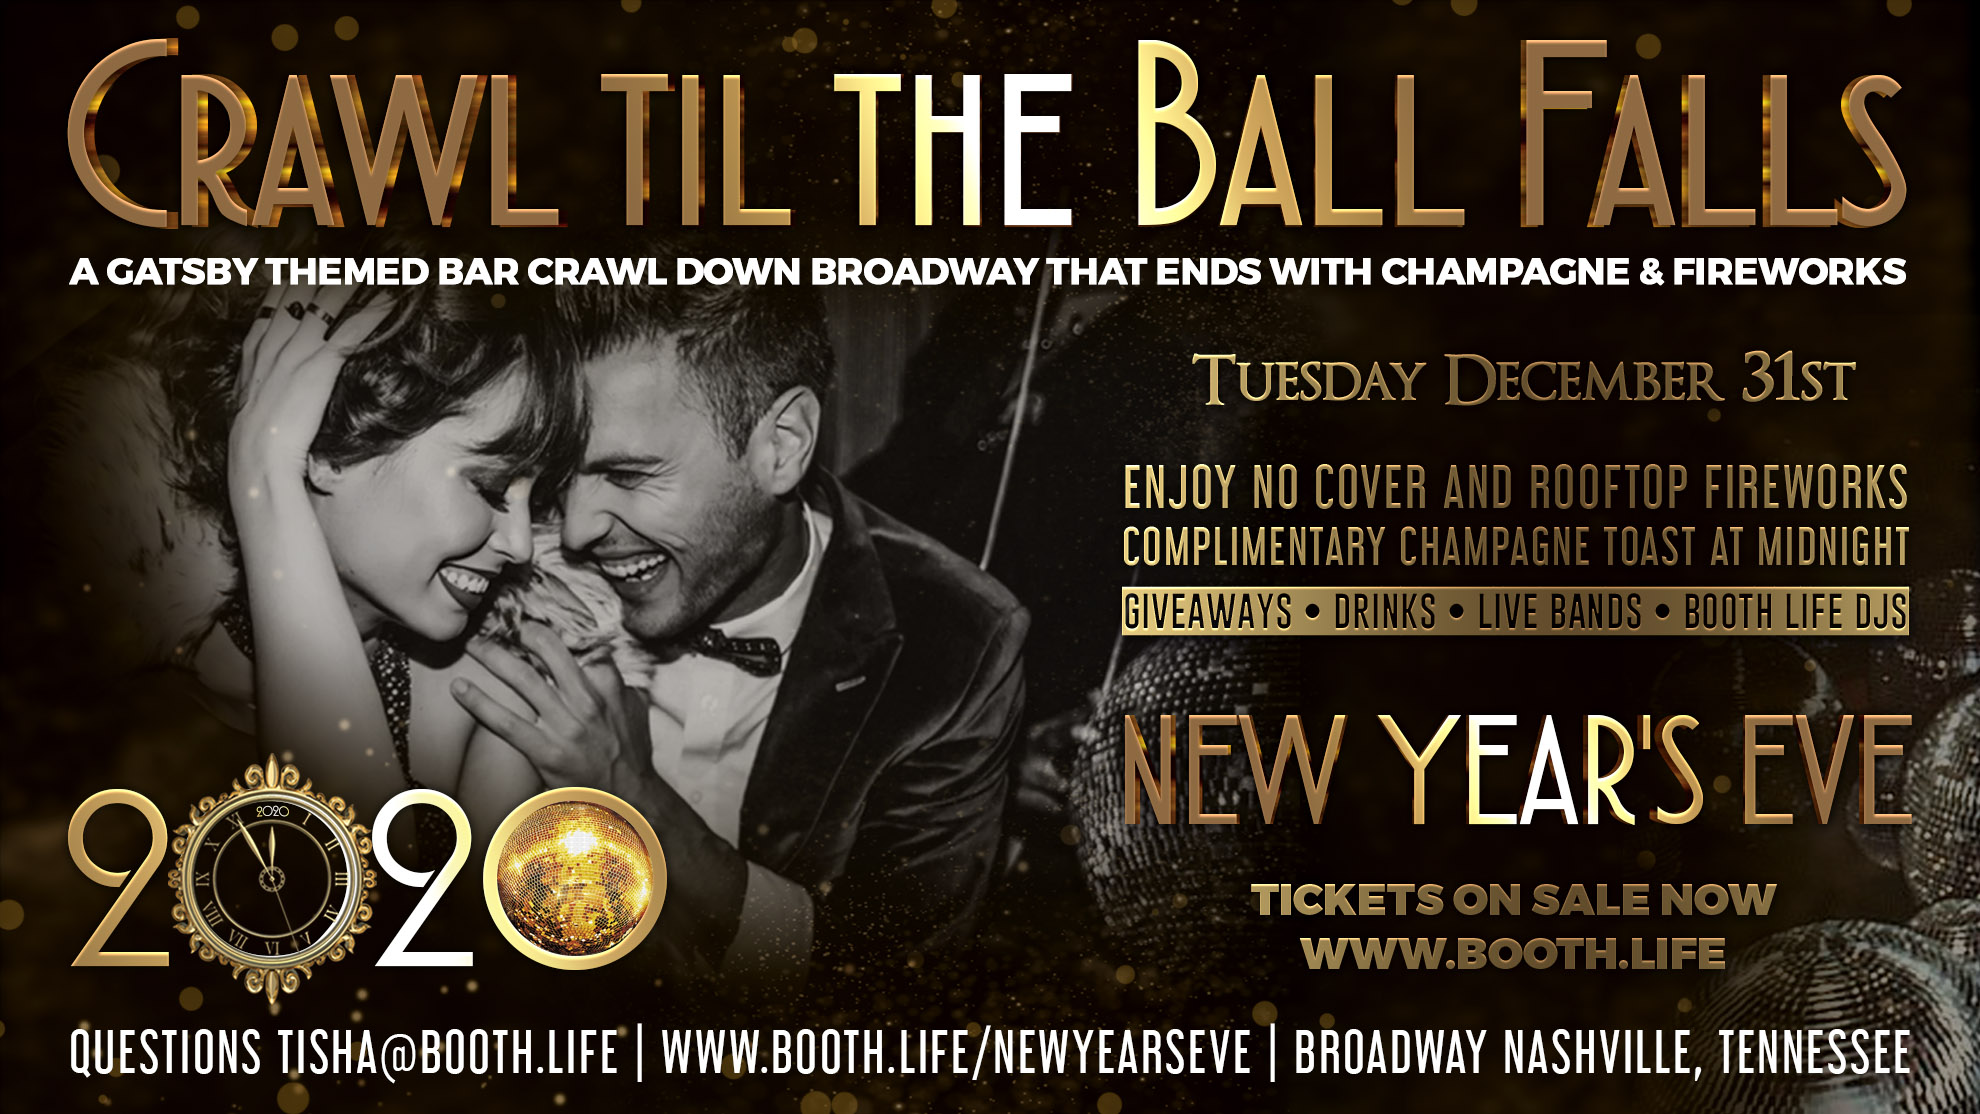 Crawl til the Ball Falls New Years Eve